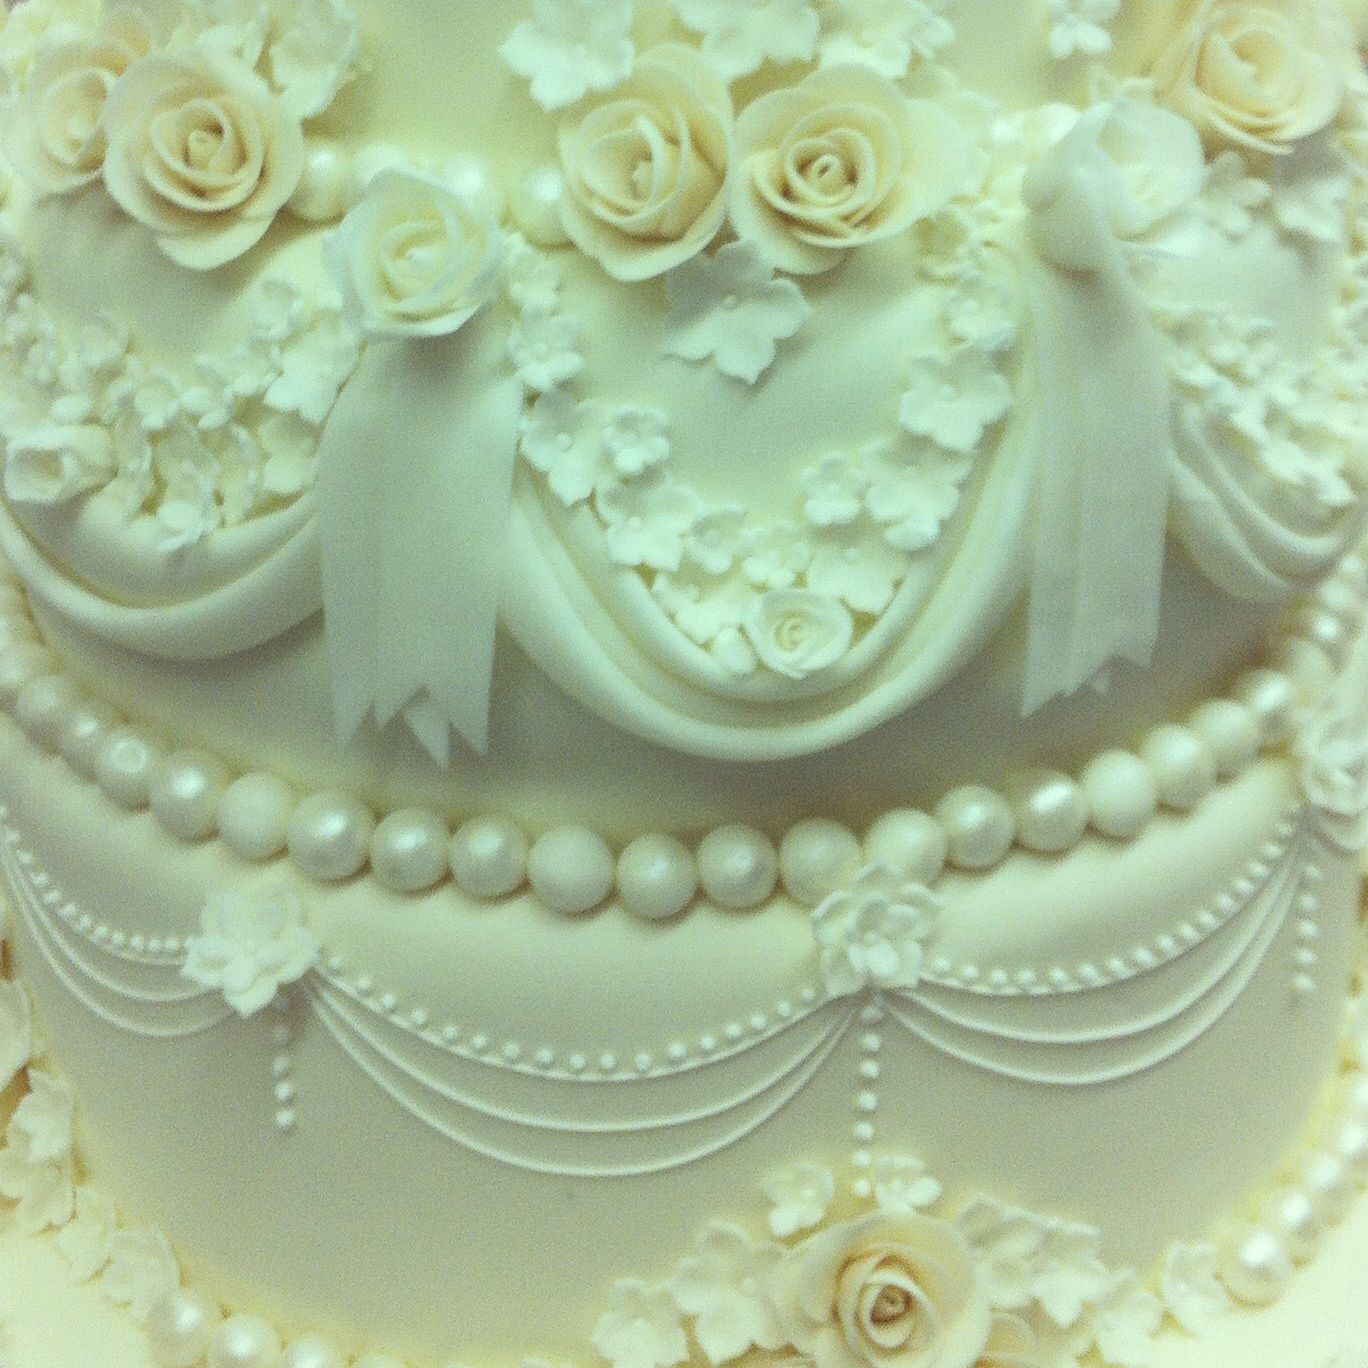 5 Tiers Wedding Cake Detail Cakedesign Weddingcake Sugarflowers